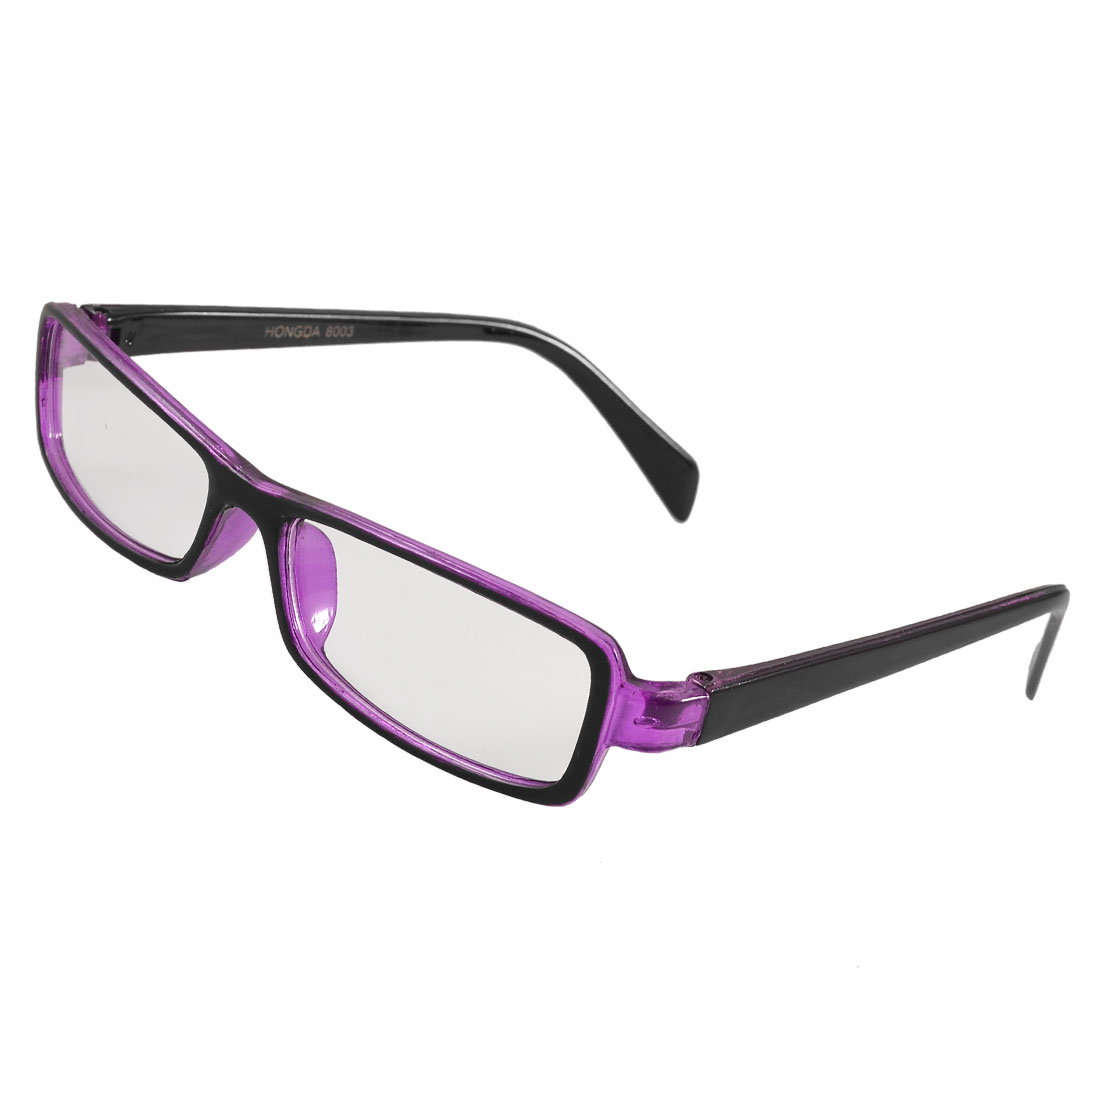 Ladies Black Clear Purple Plastic Full Frame Plano Glasses Eyeglasses